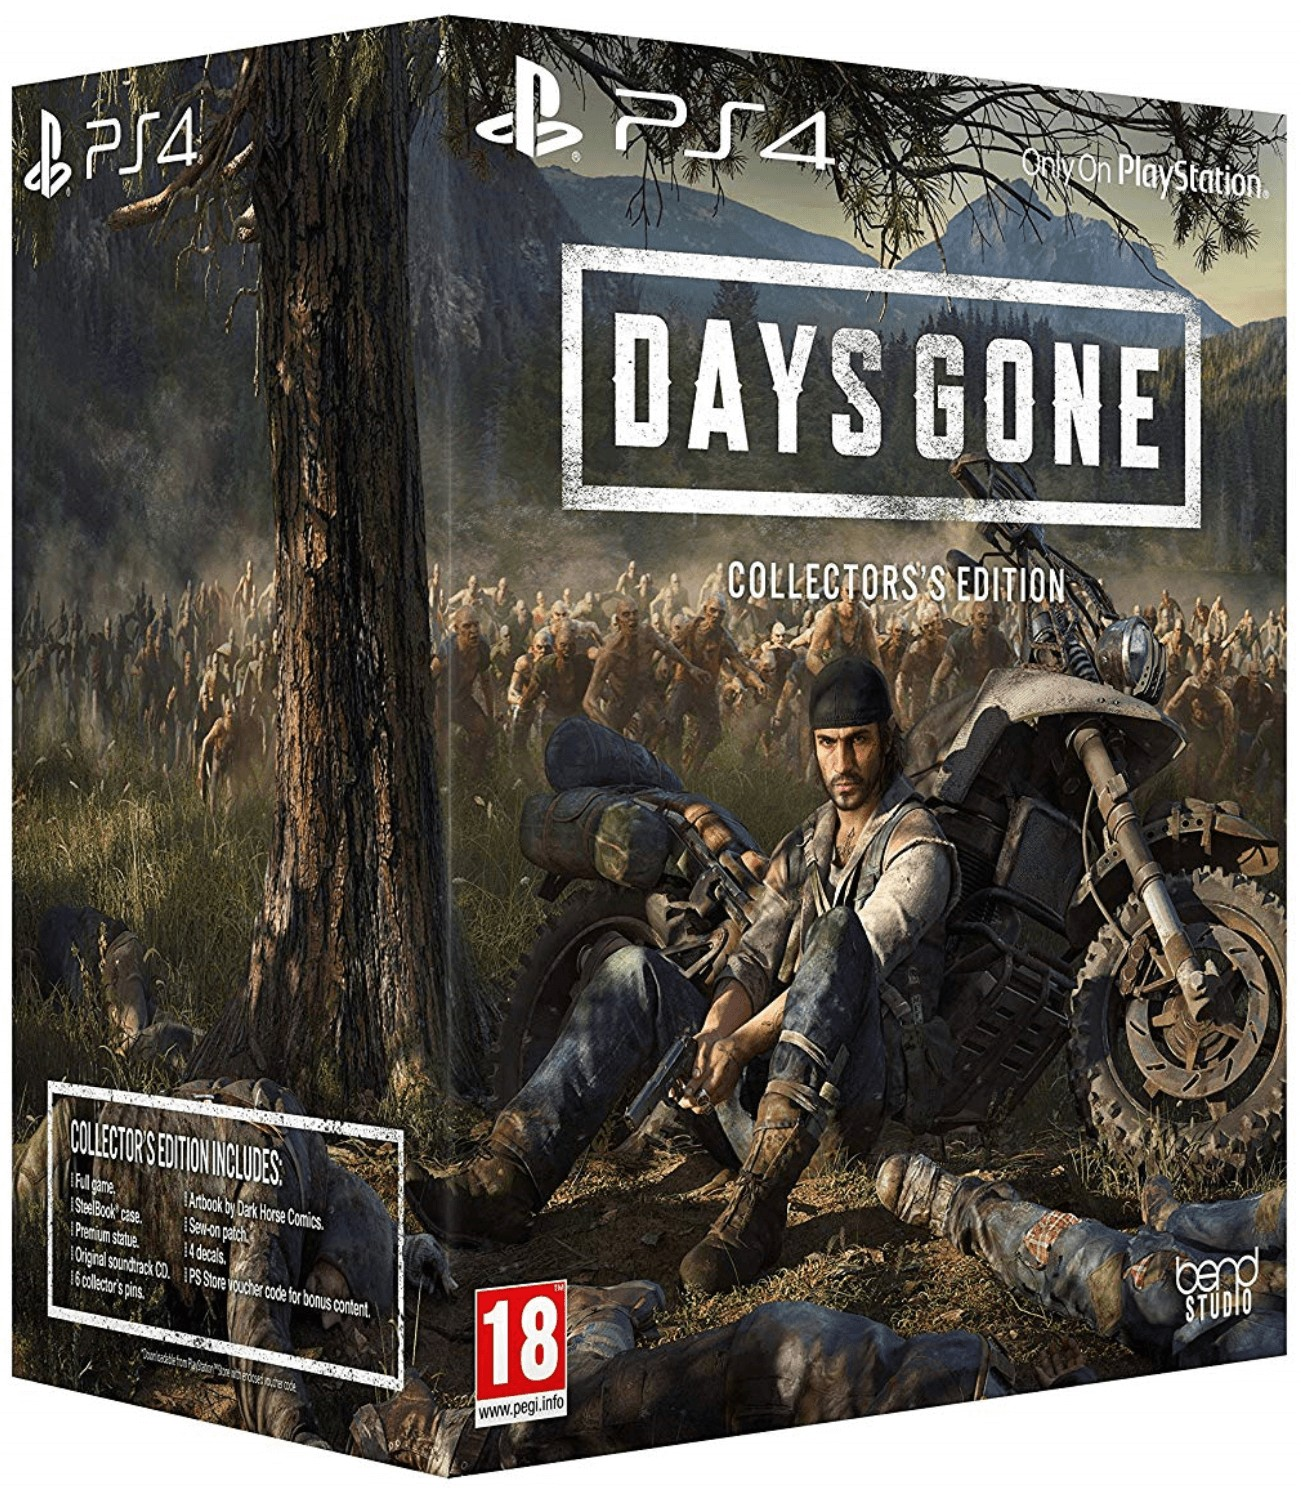 Days Gone Collectors Edition + Preorder bonus PS4